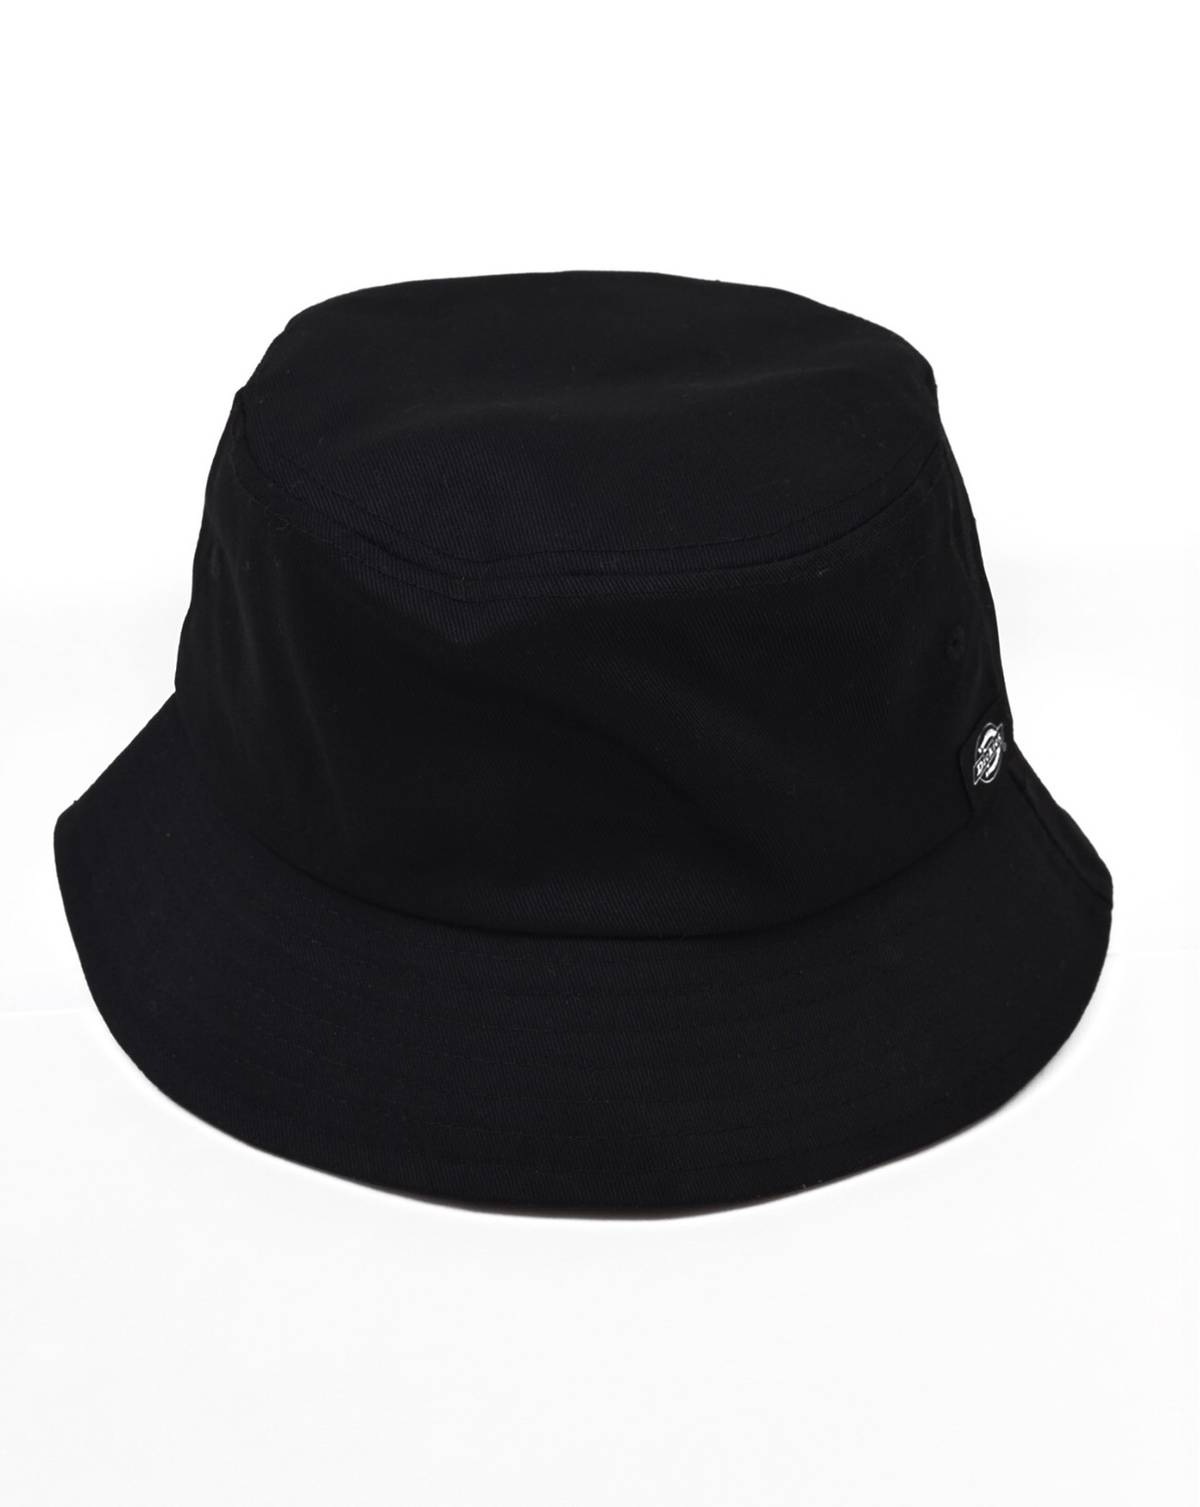 Dickies DICKIES ADDISON BUCKET HAT Size one size - Hats for Sale - Grailed 01d26b6f6c9